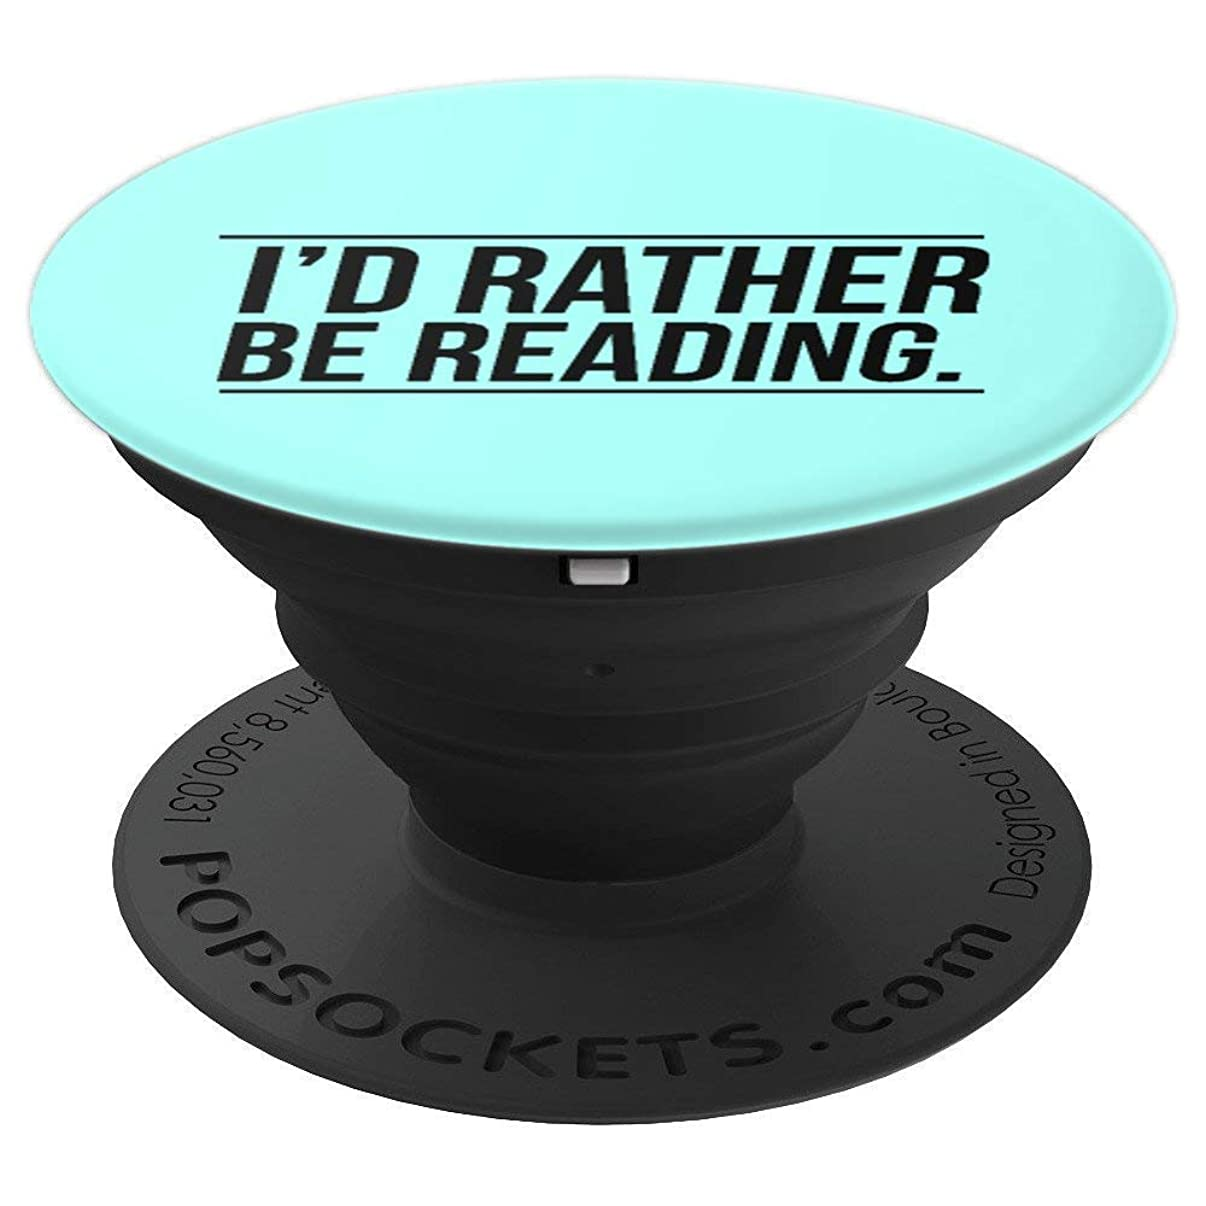 I'd Rather Be Reading Funny Gift for Librarians Teachers - PopSockets Grip and Stand for Phones and Tablets